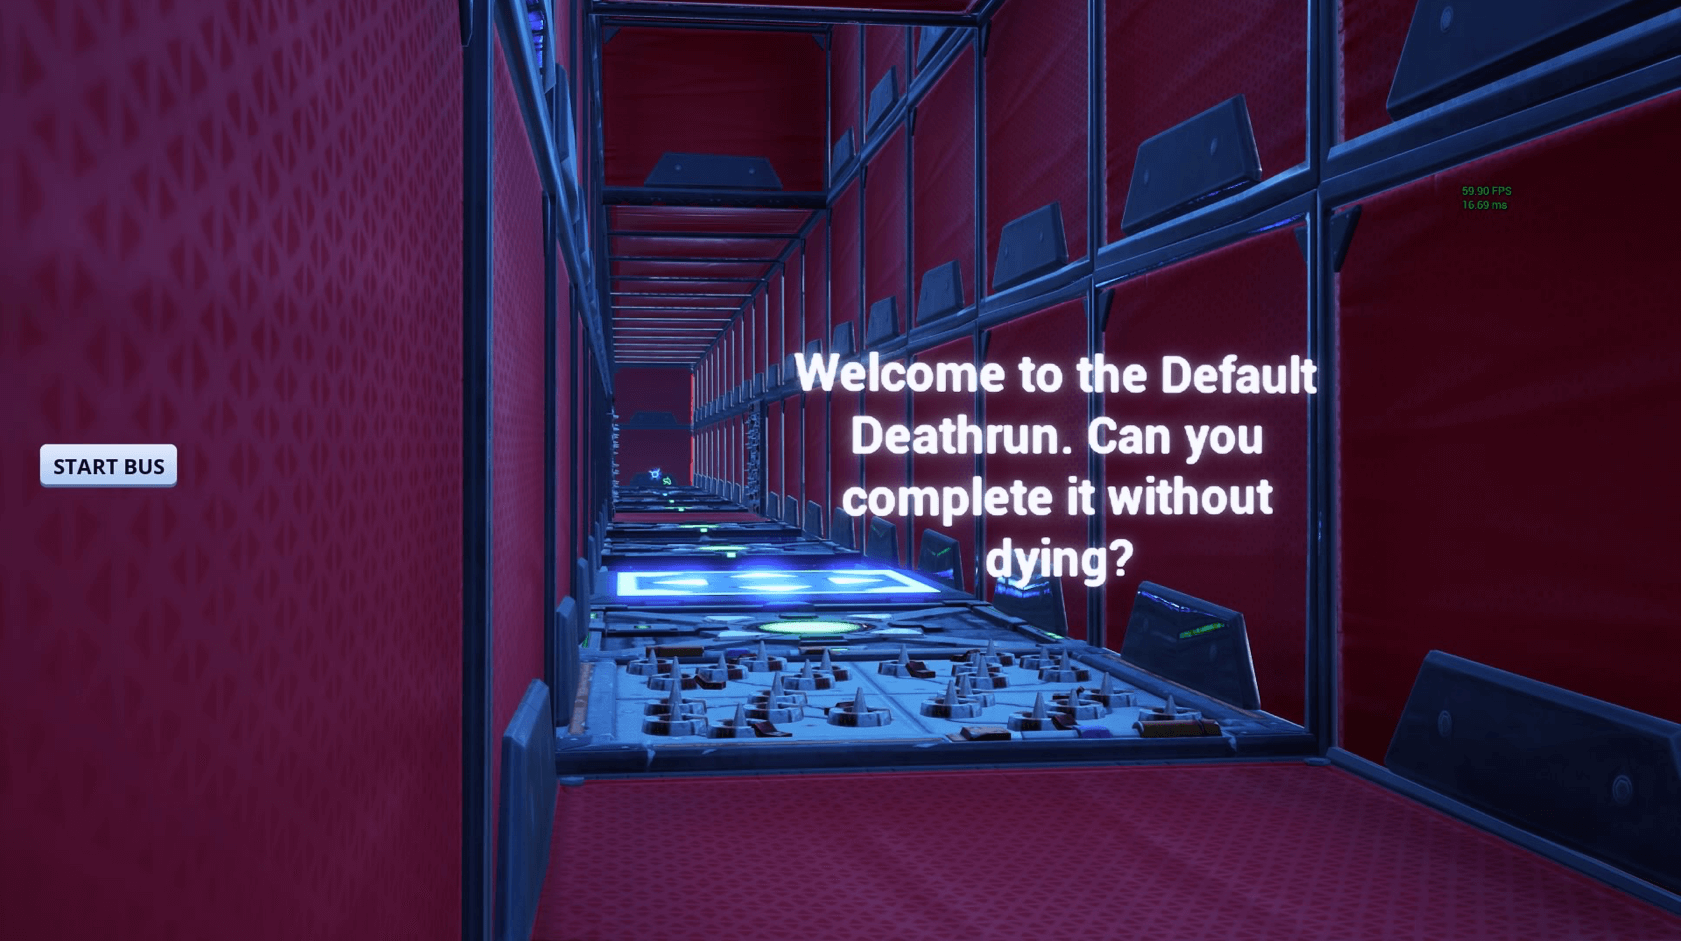 THE BEST DEFAULT DEATHRUN!